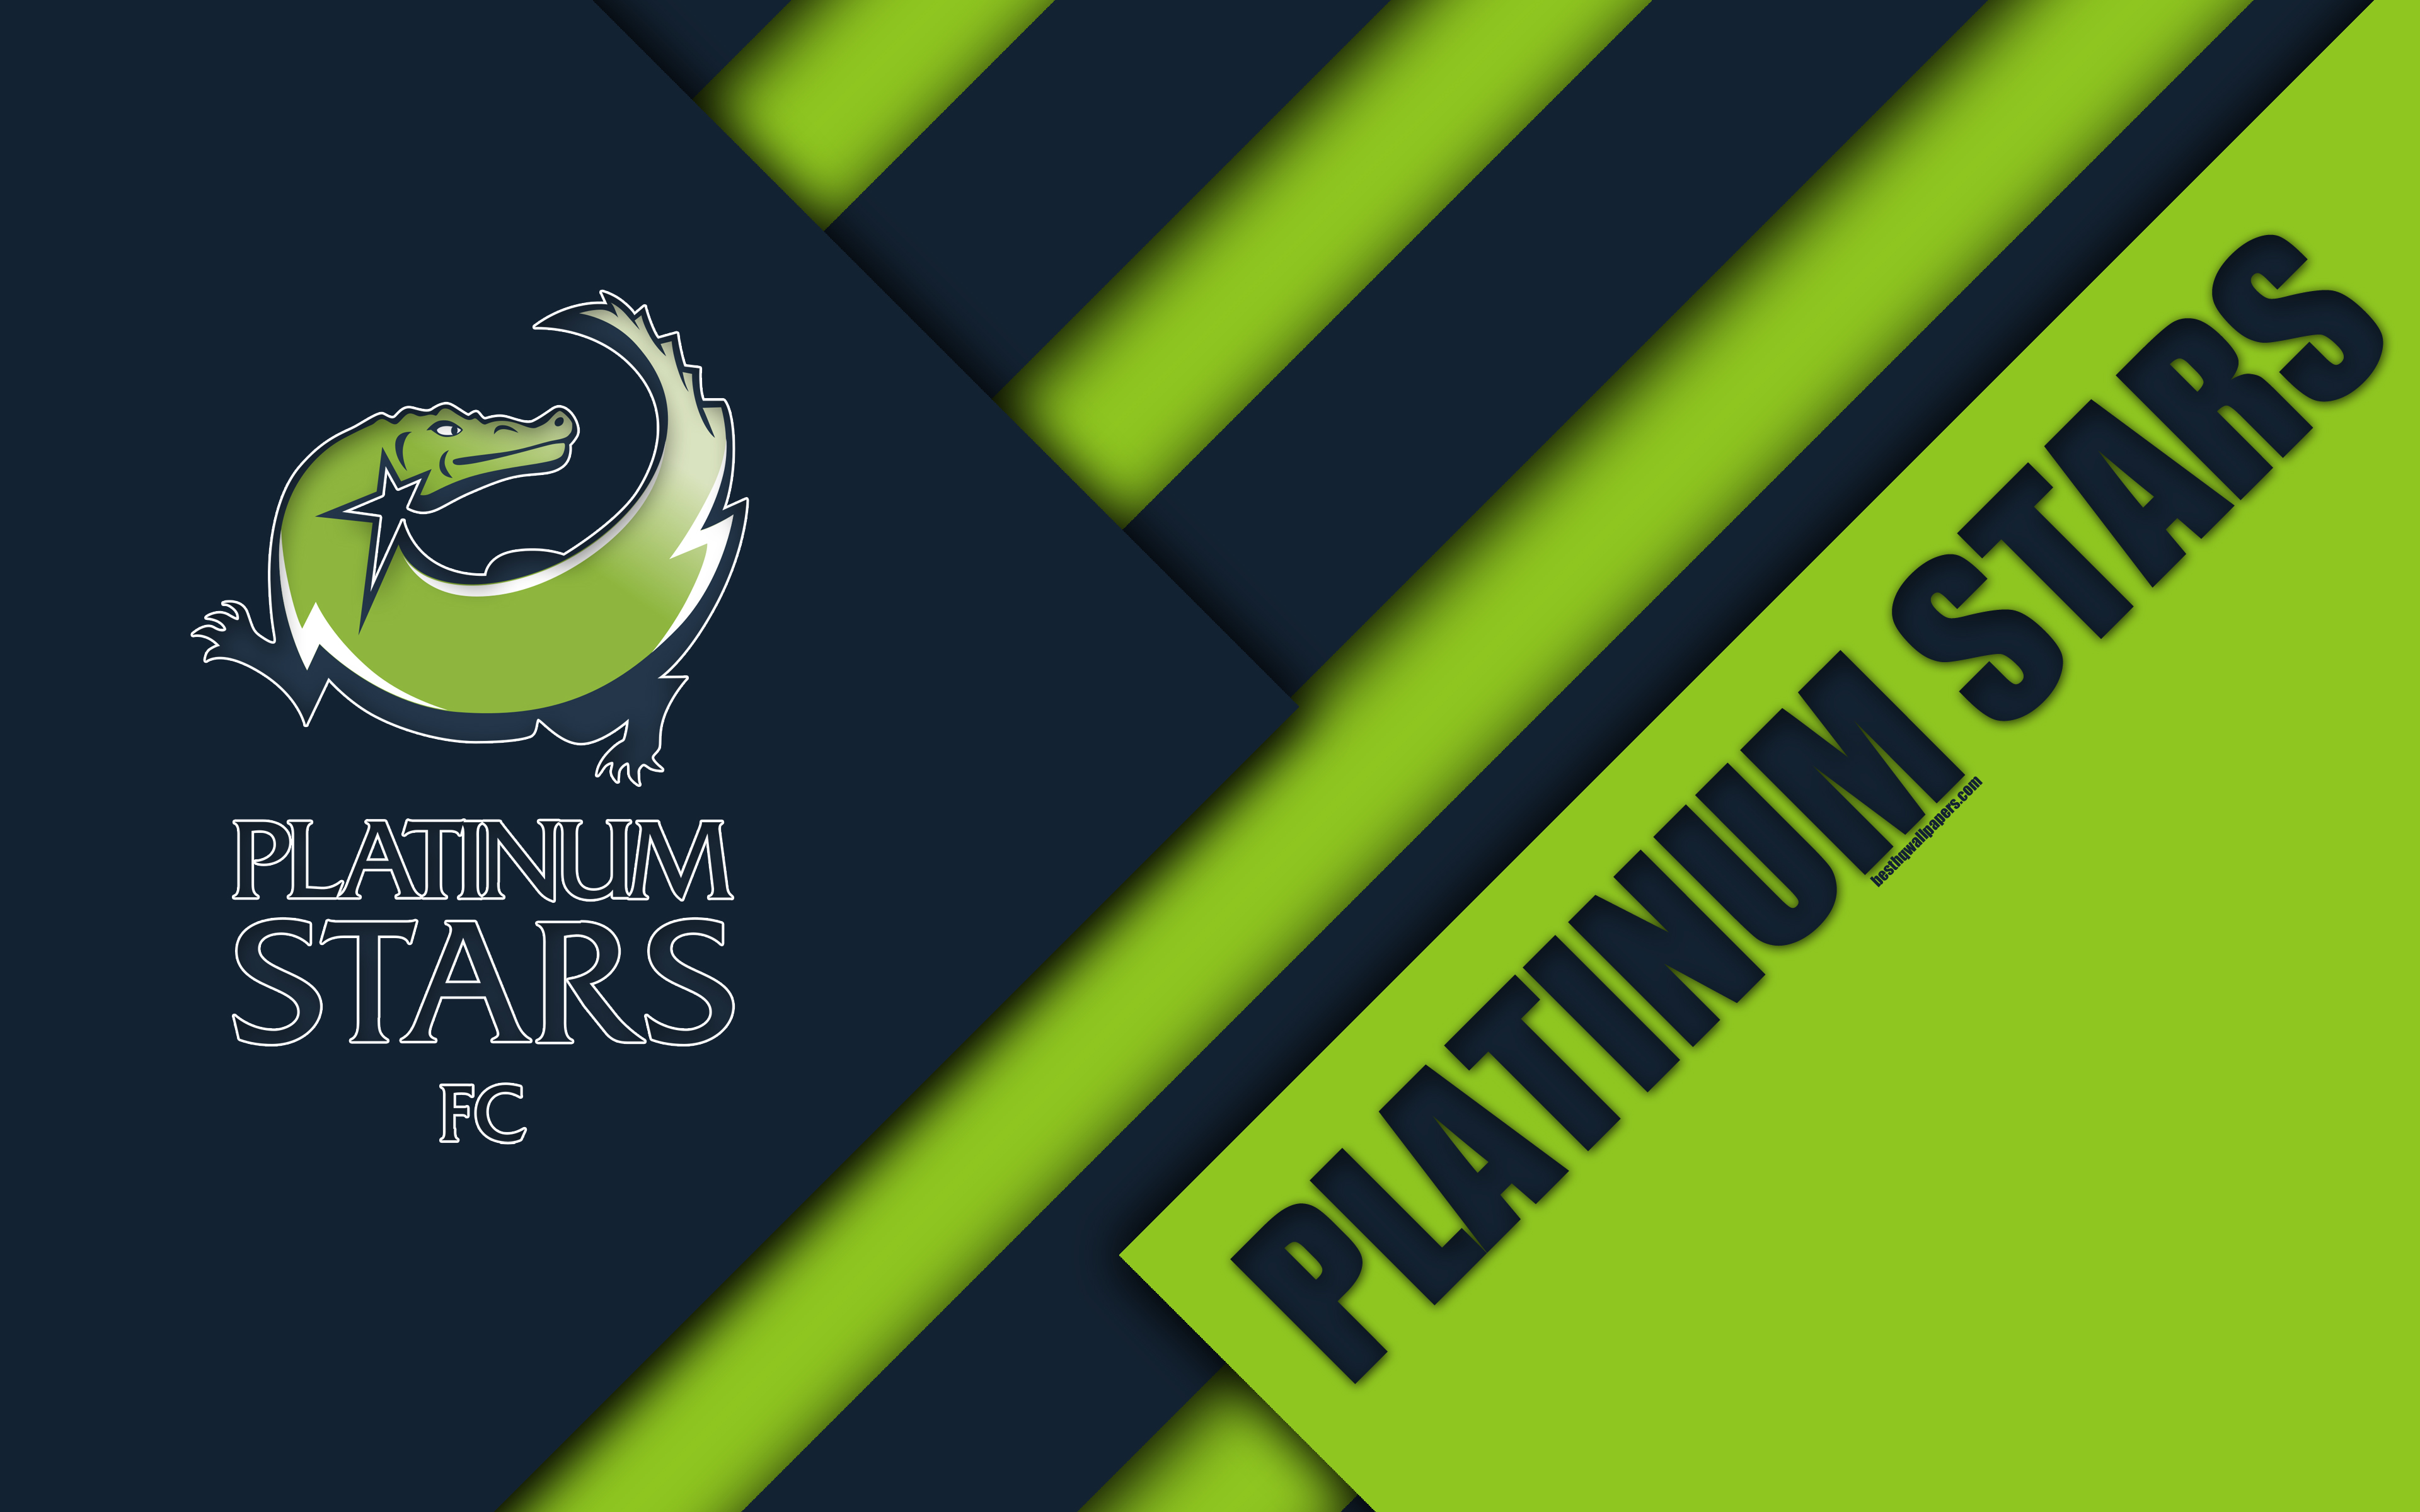 Download wallpapers Platinum Stars FC, 4k, South African Football